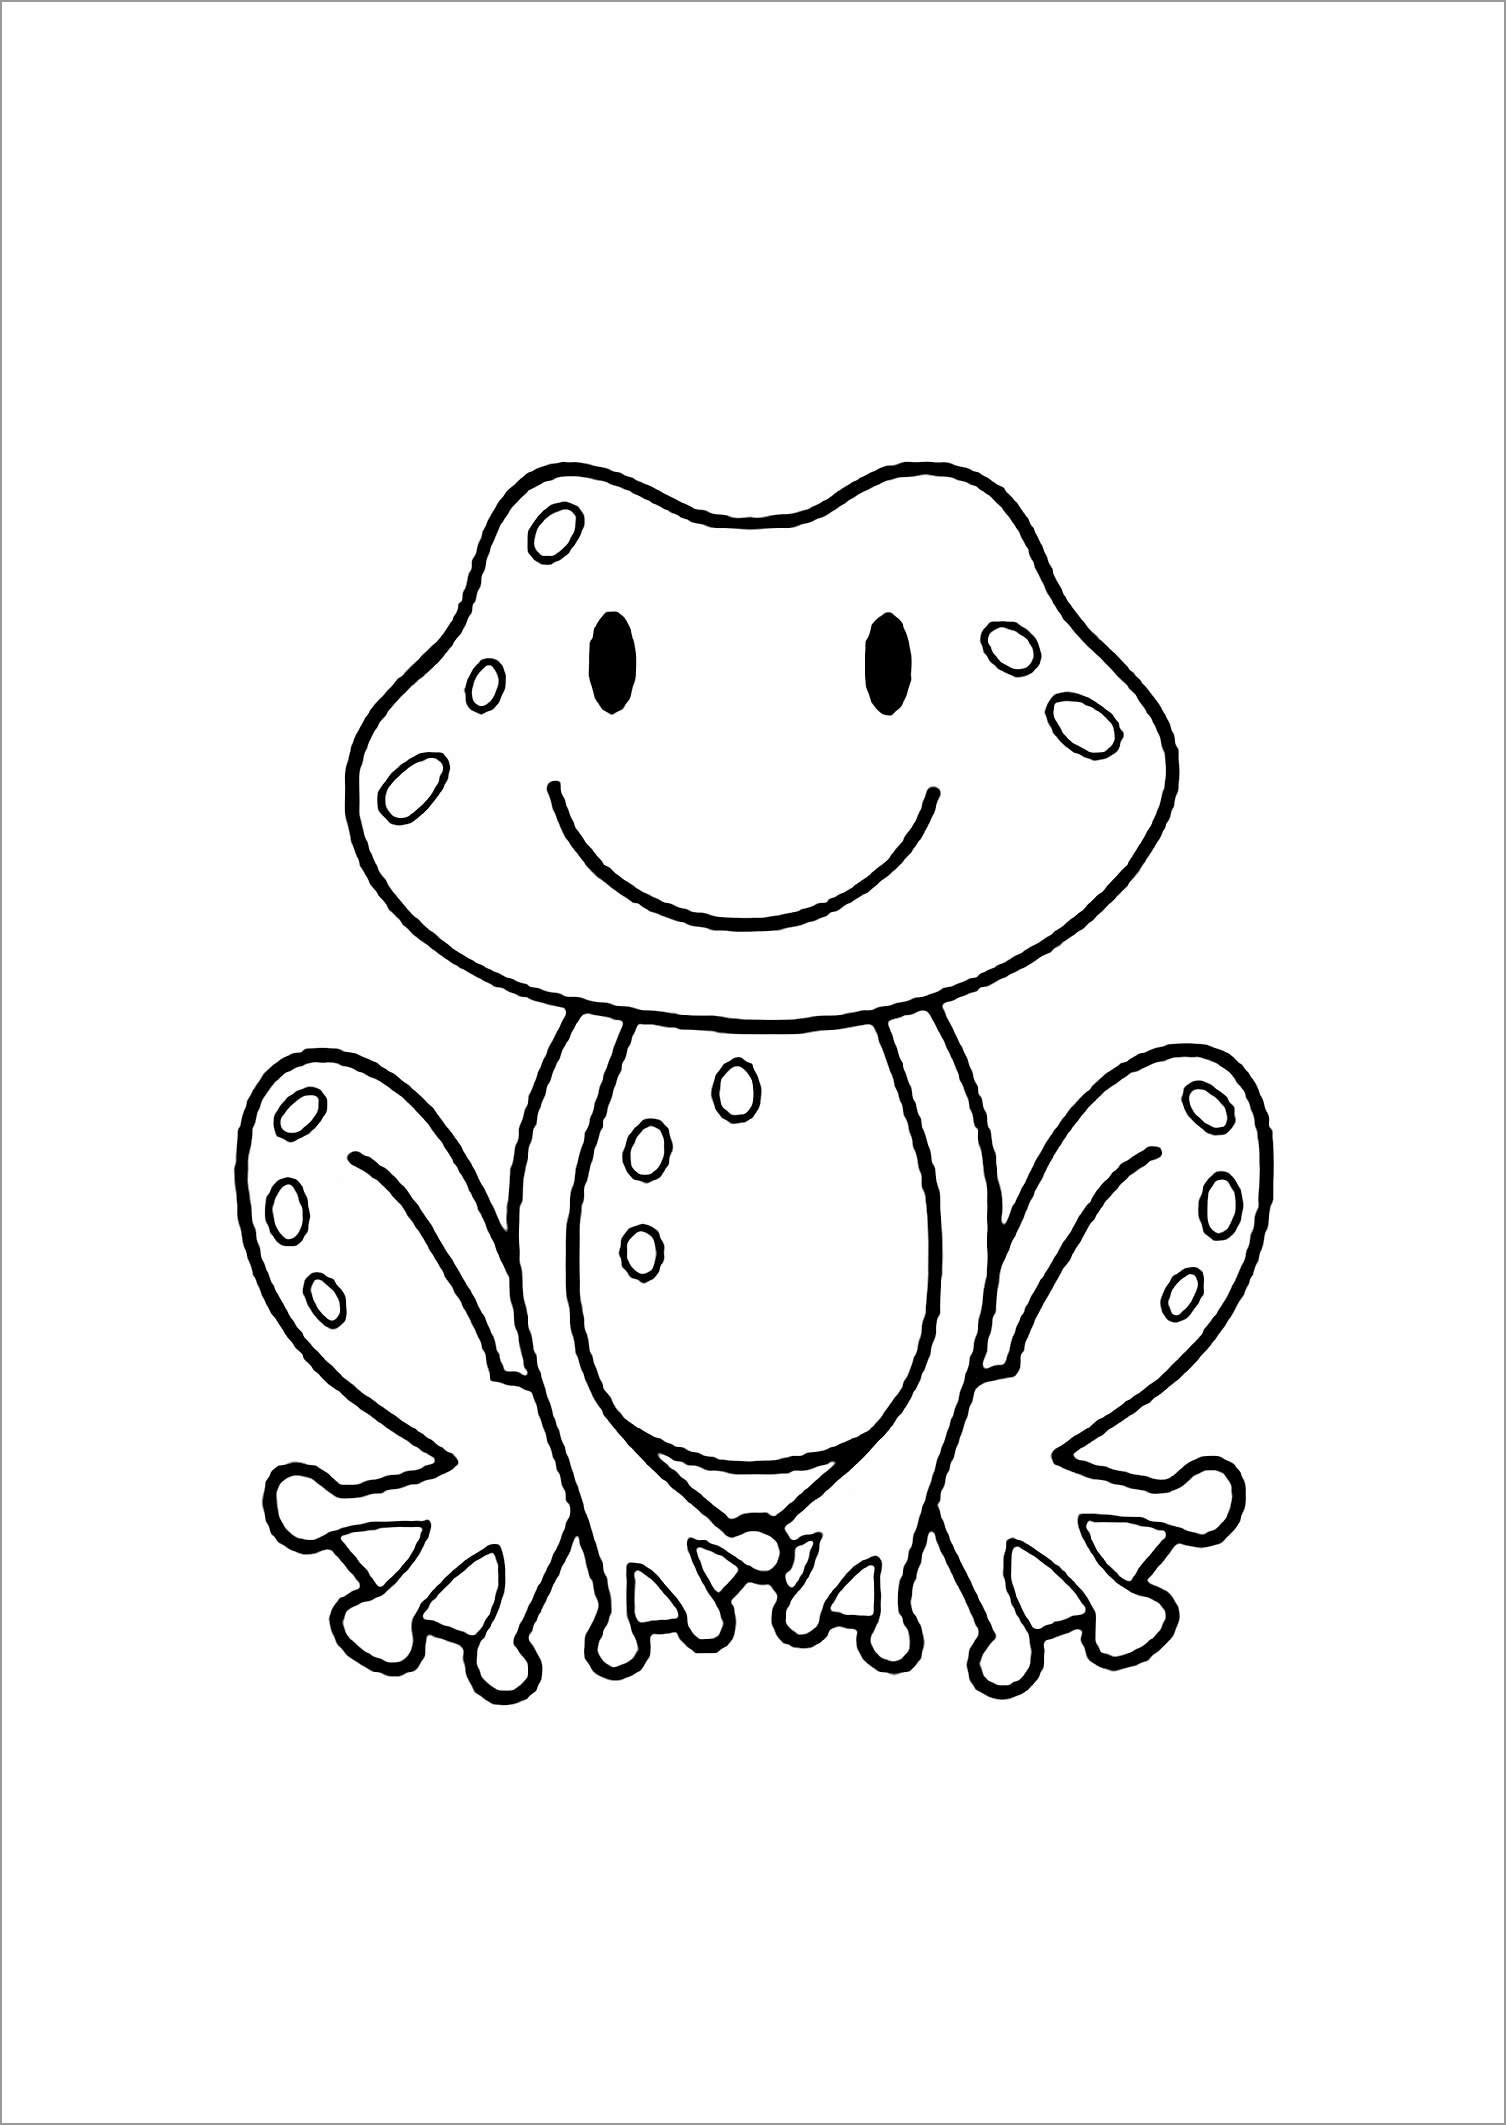 Cute Cartoon toad Coloring Page